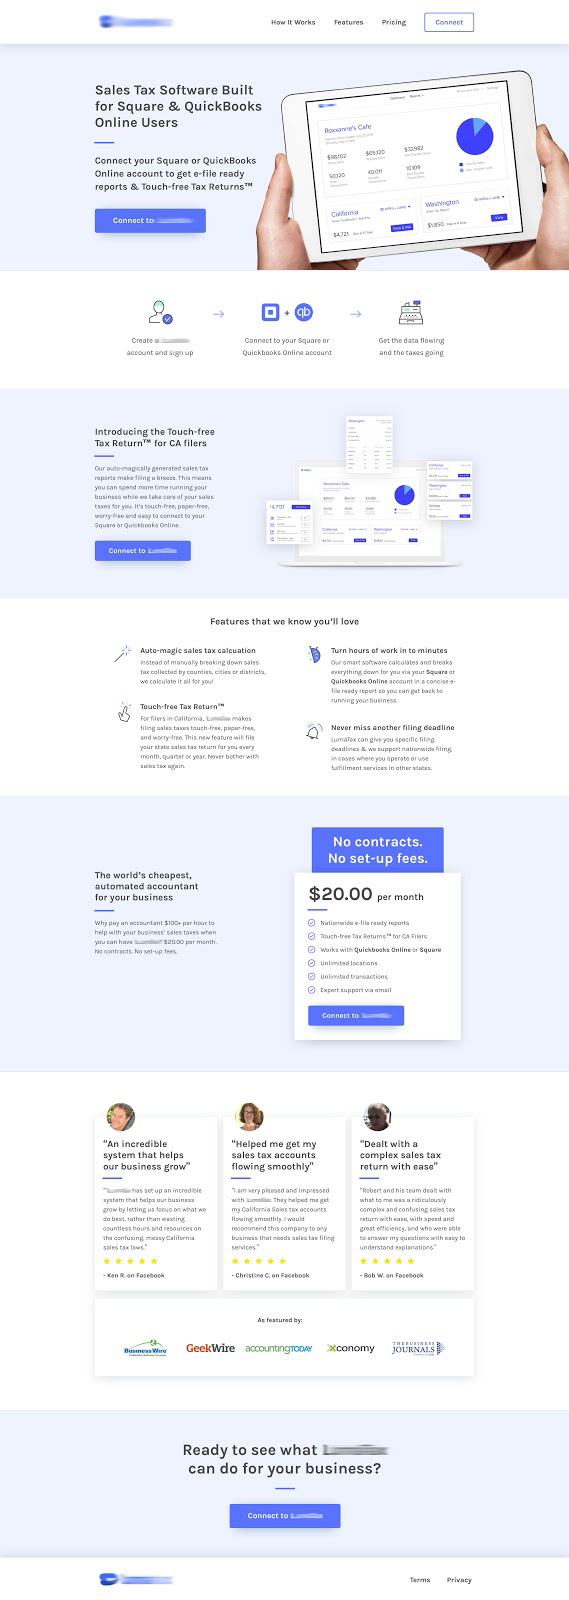 Sales tax software landing page designed by Aaron Packard